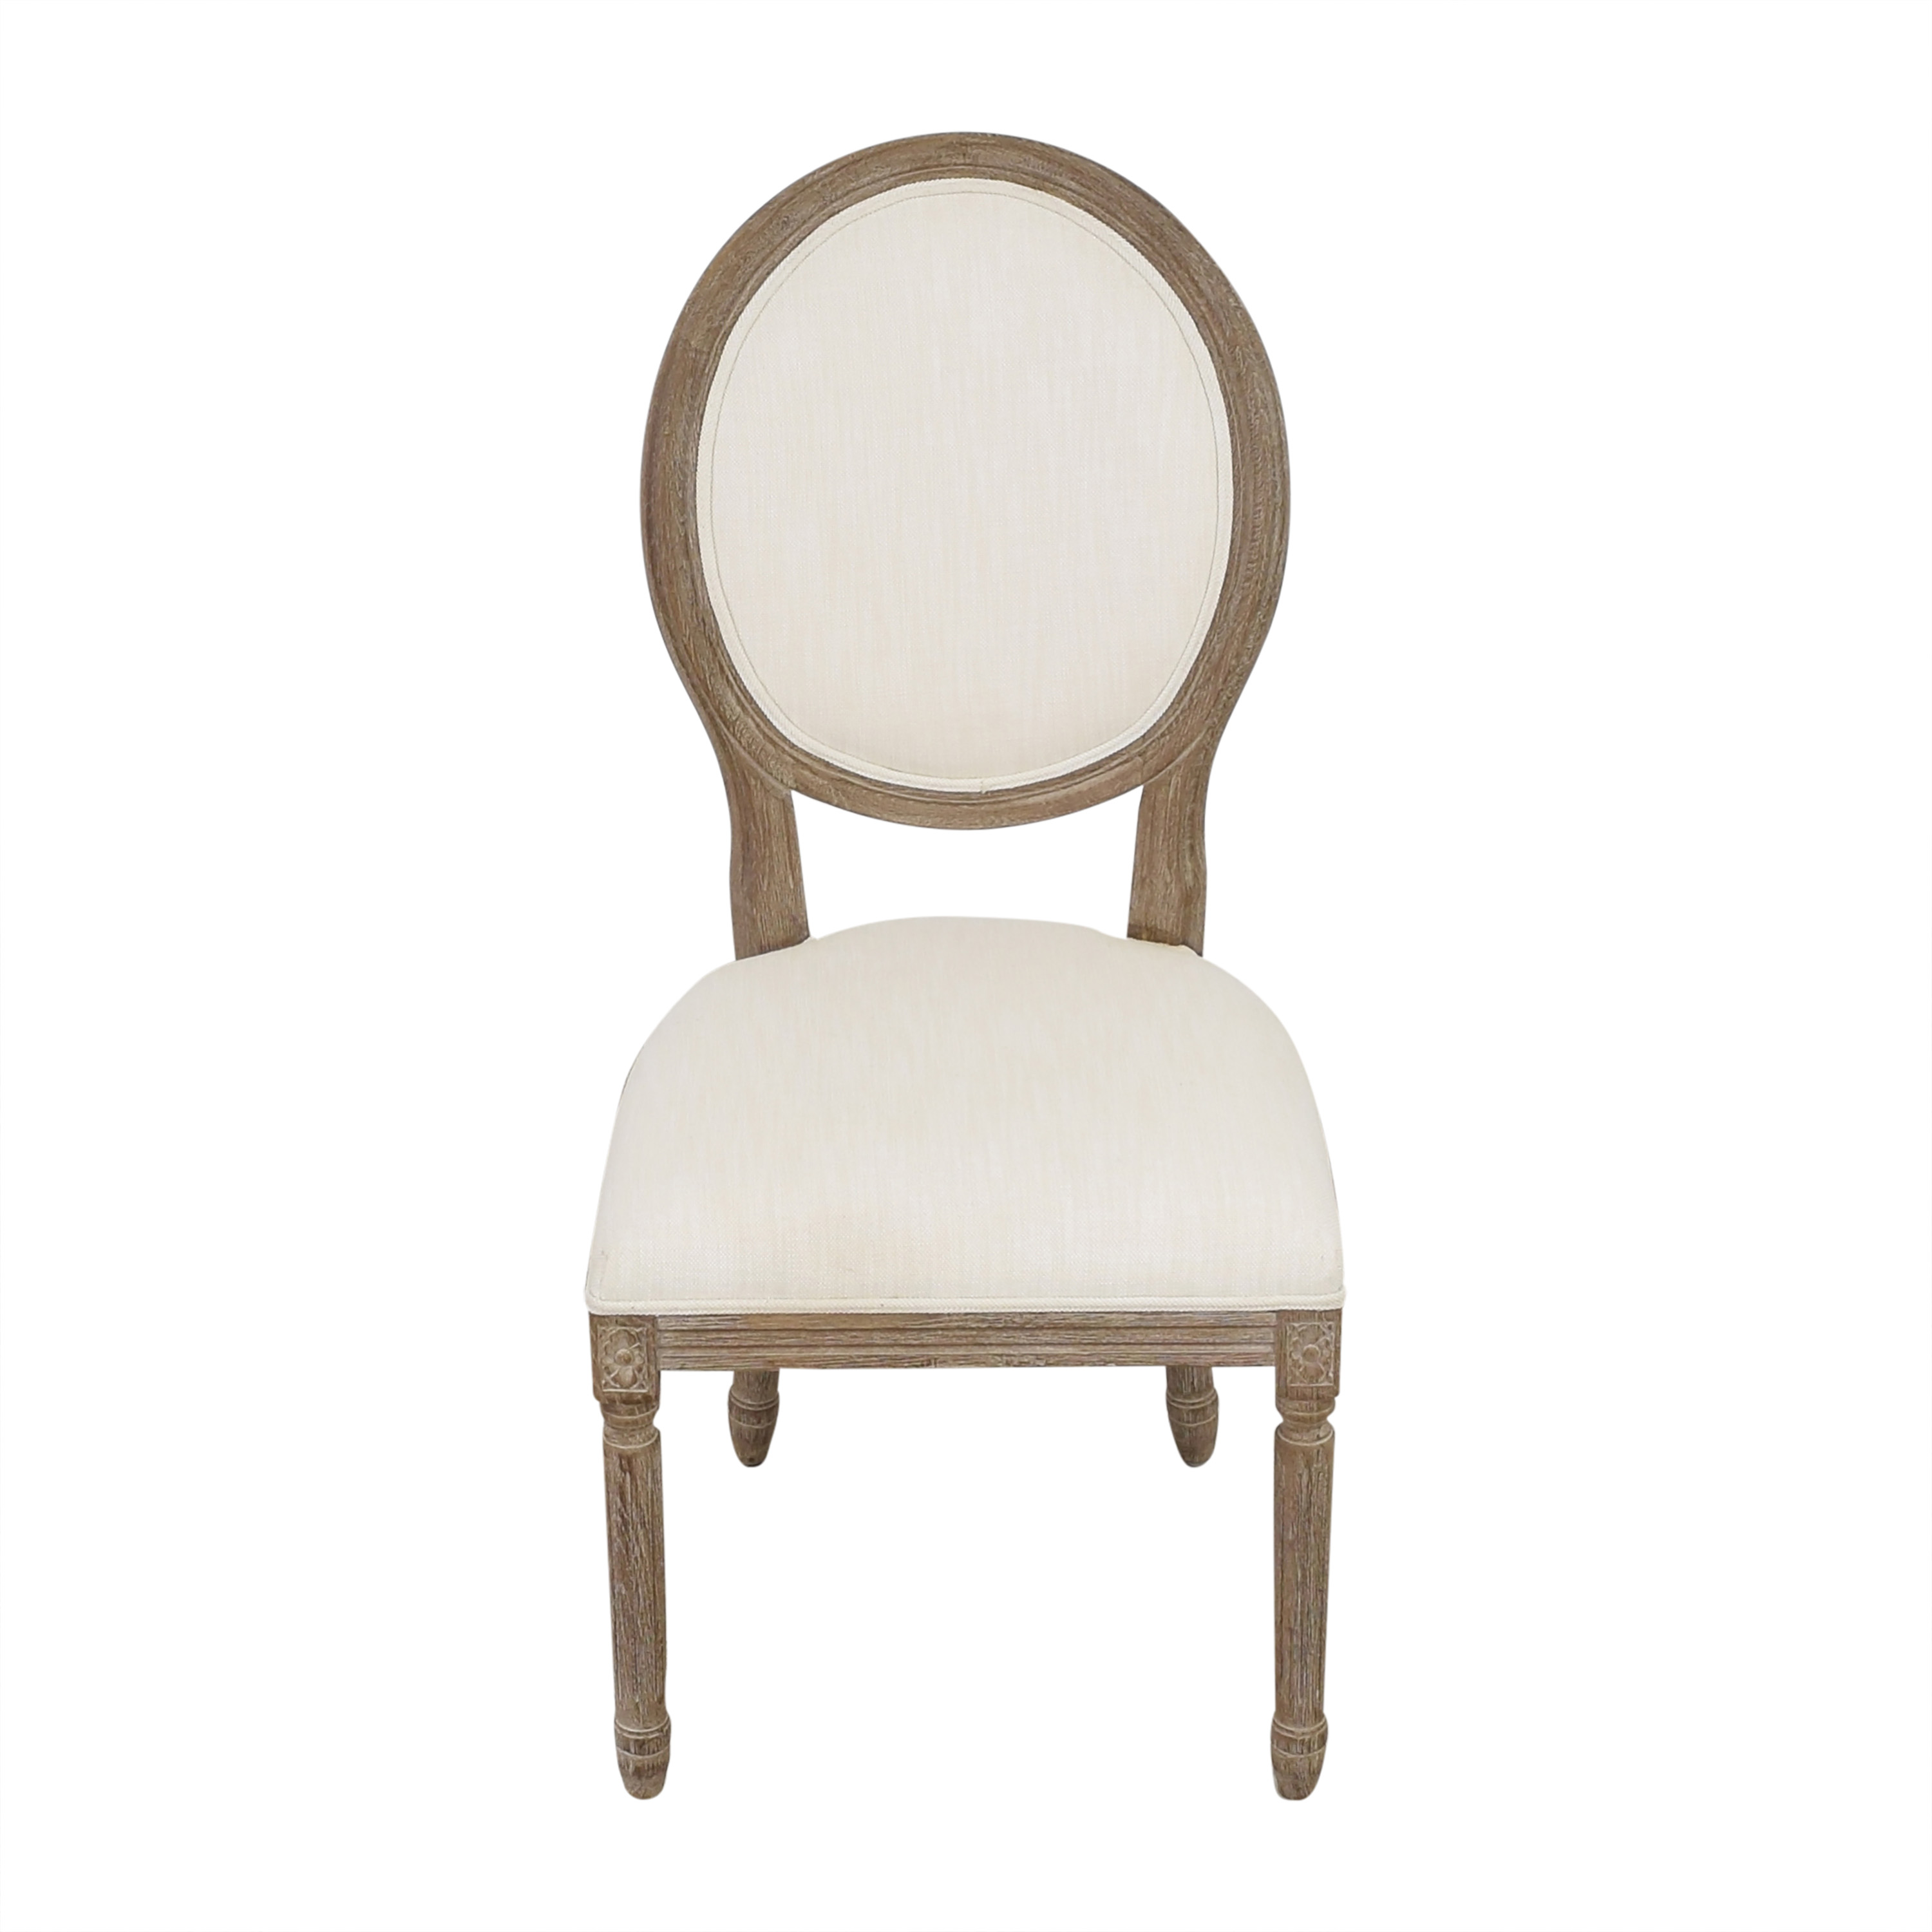 Restoration Hardware Restoration Hardware Vintage French Round Side Chair for sale